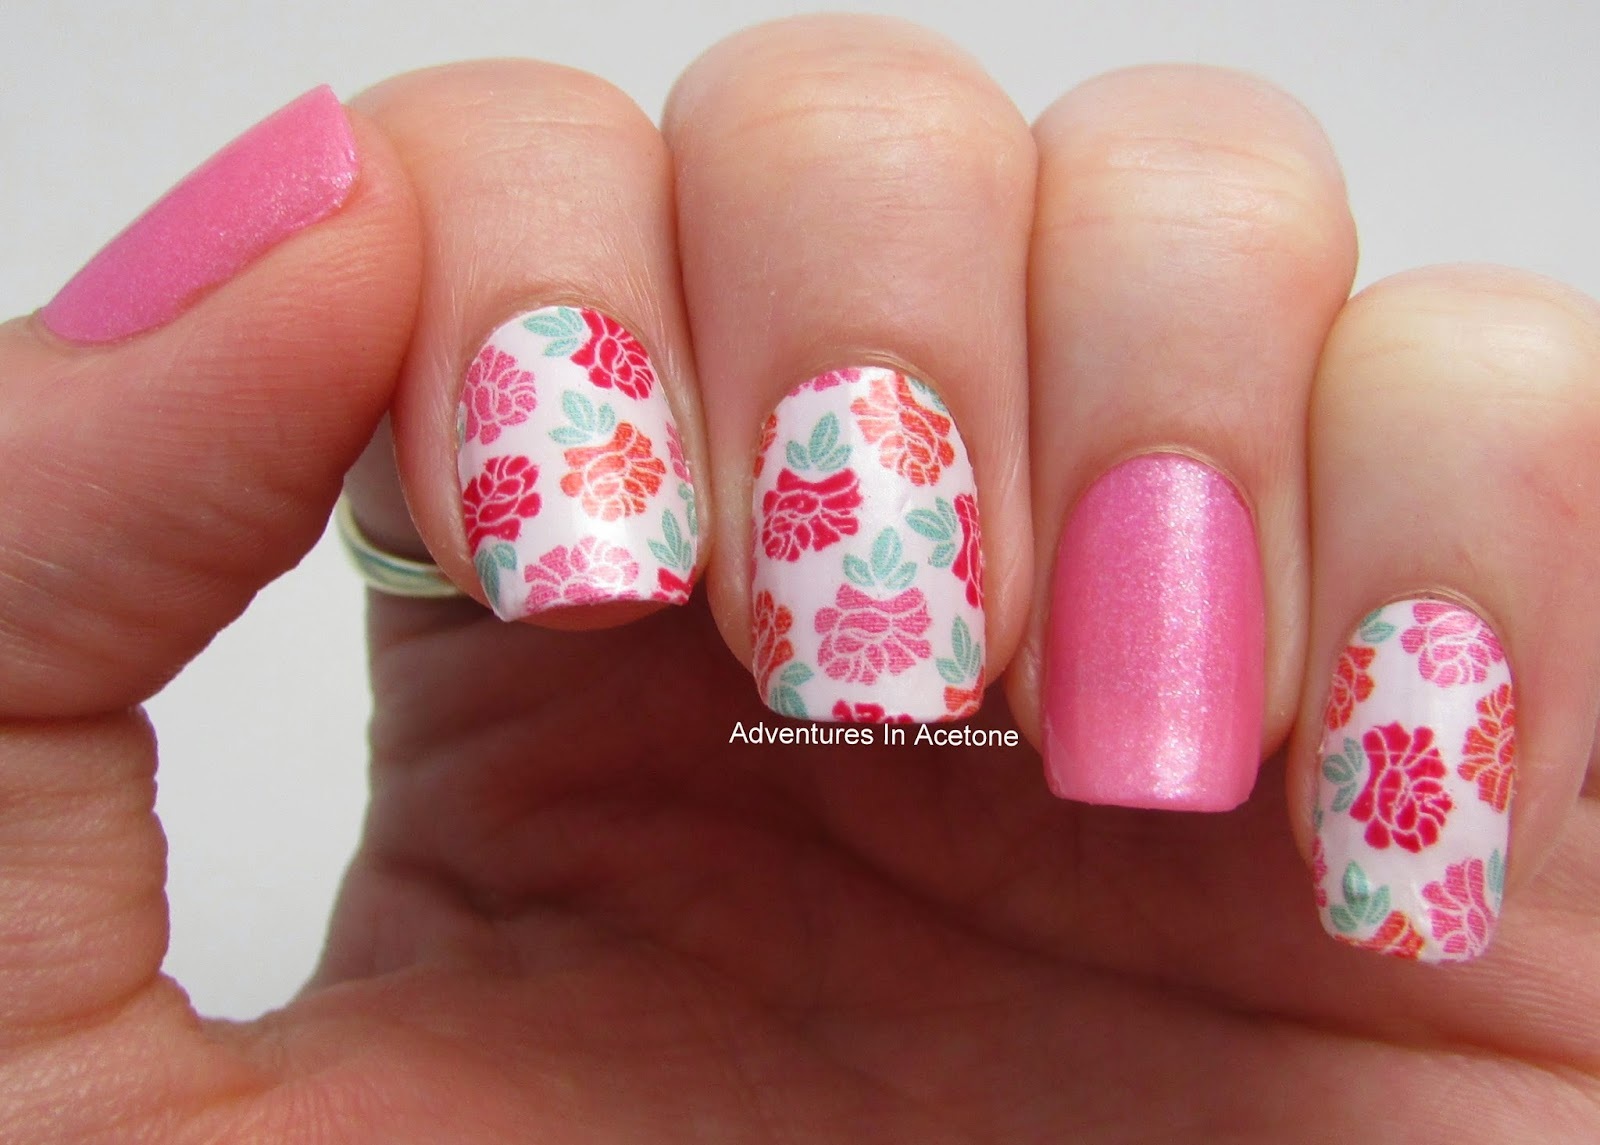 Incoco Real Nail Polish Appliqué Review! - Adventures In Acetone